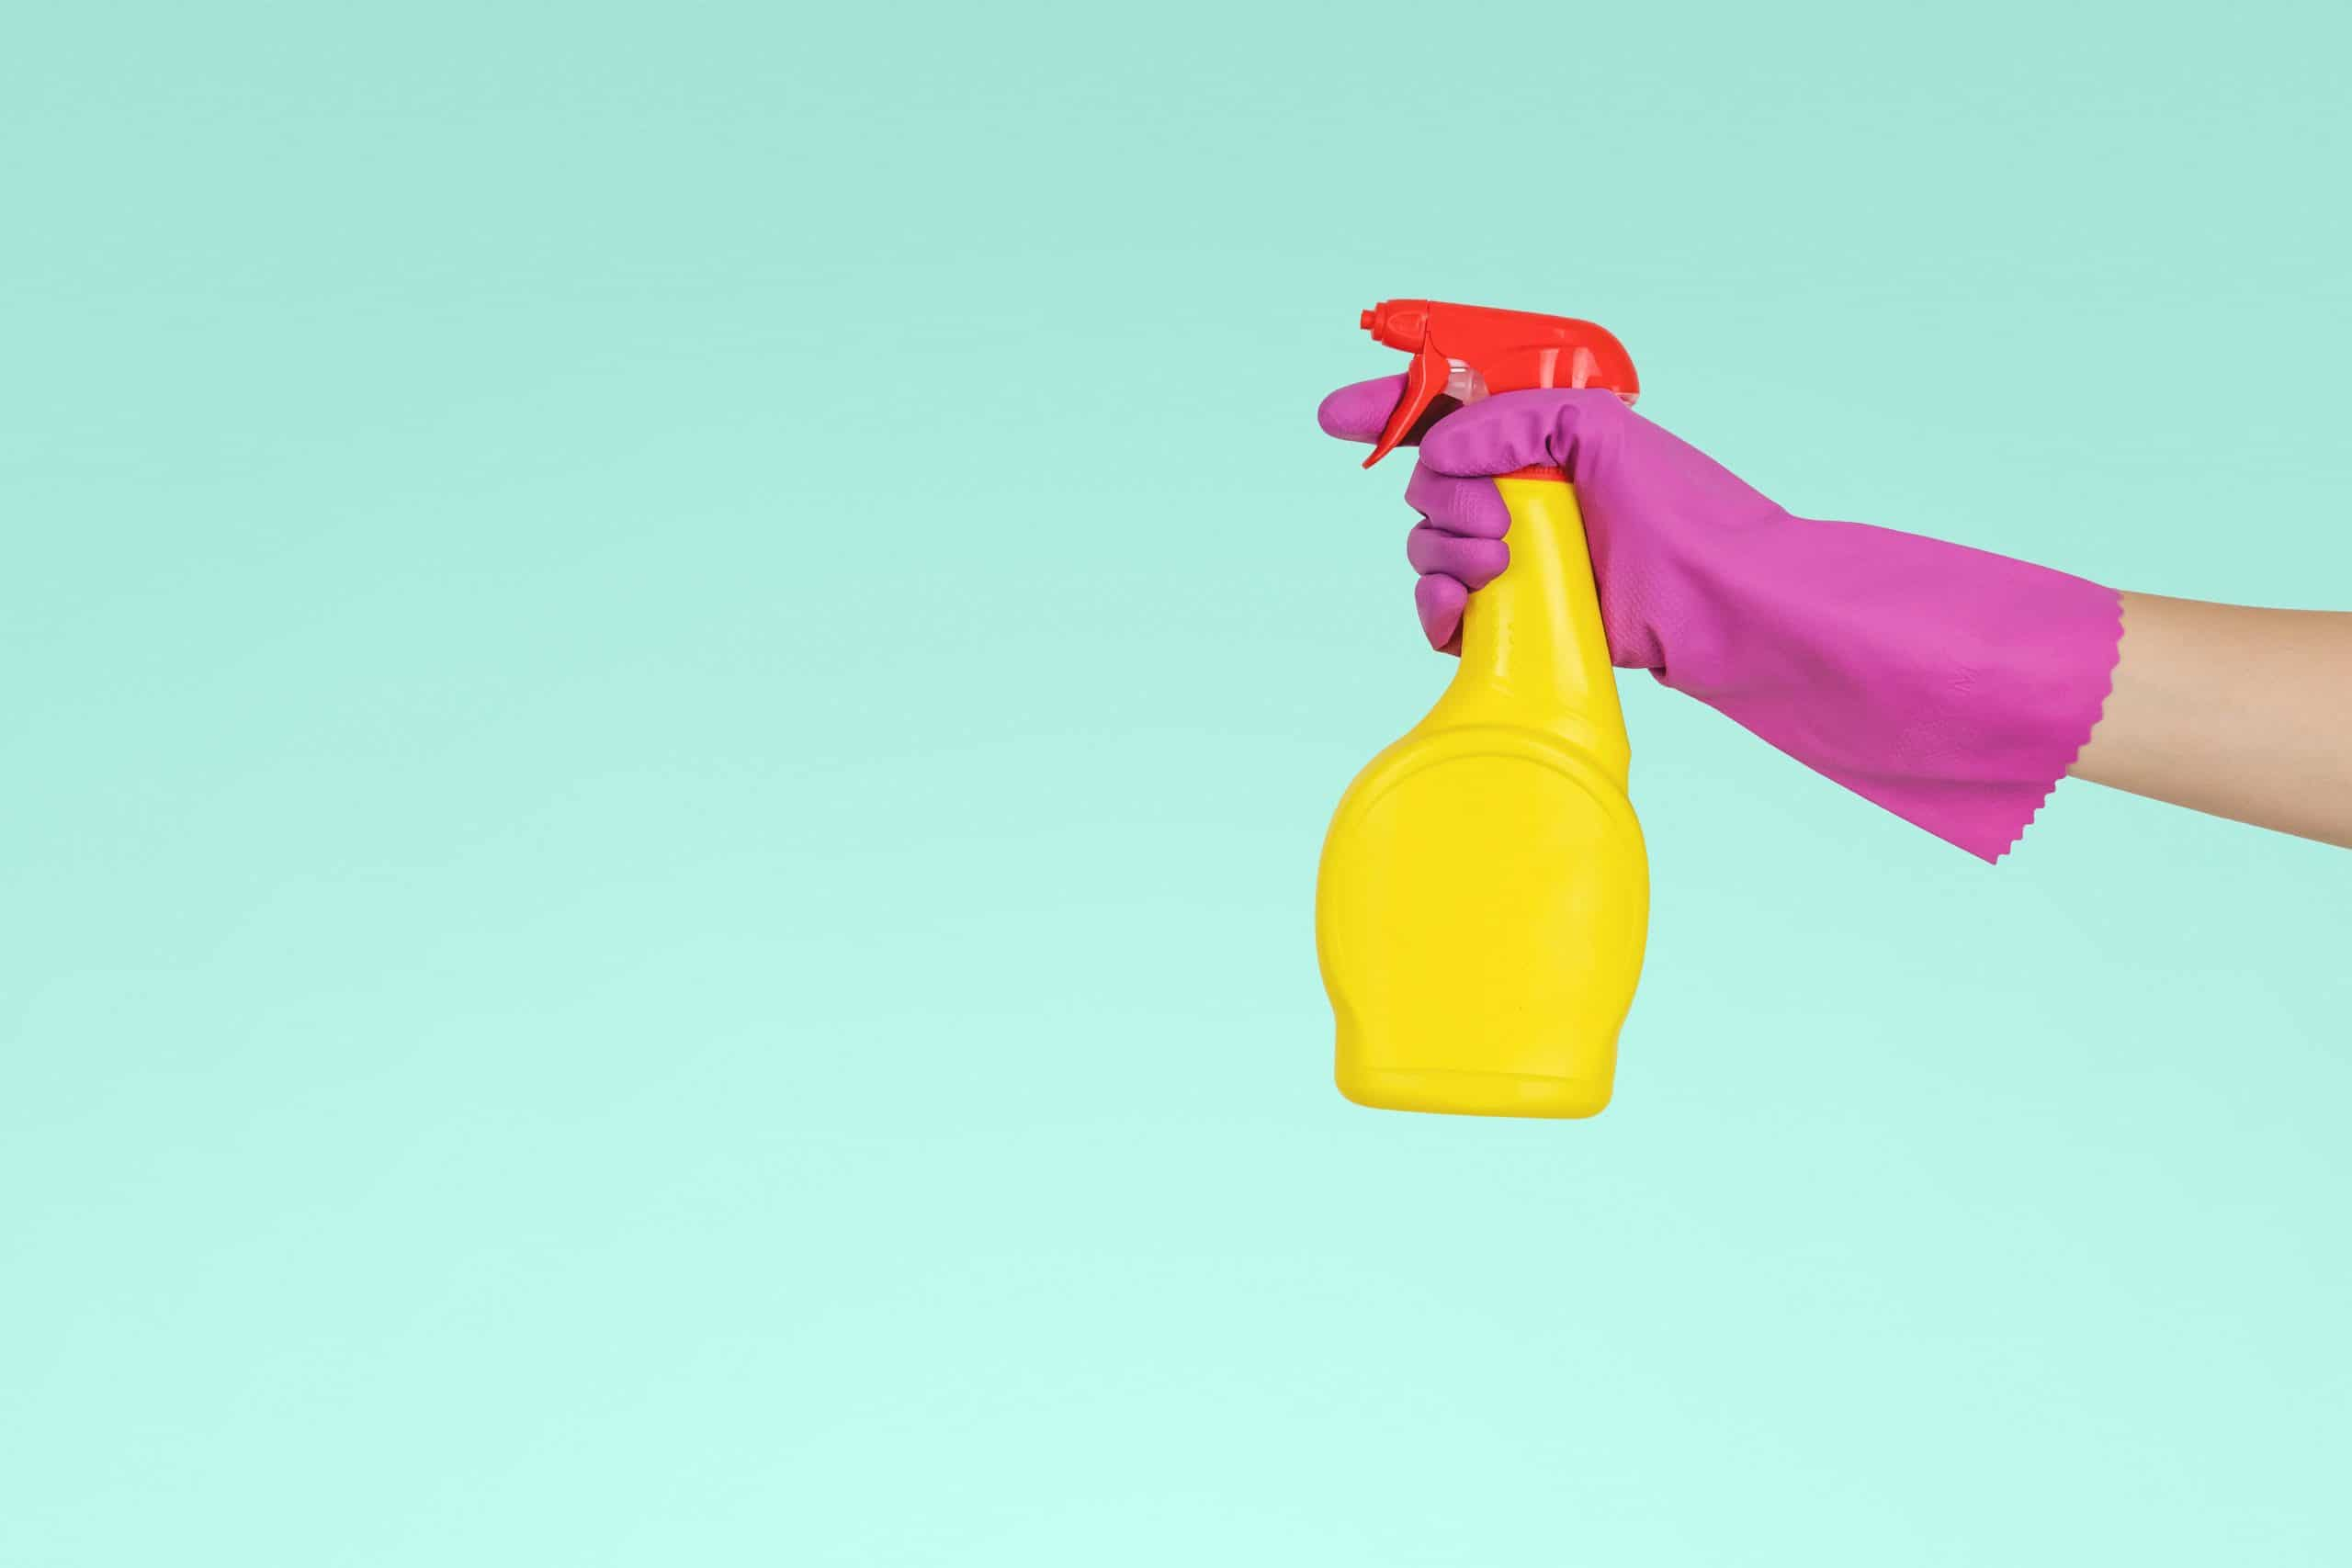 Uses And Precautions Of Bleach Cleaner